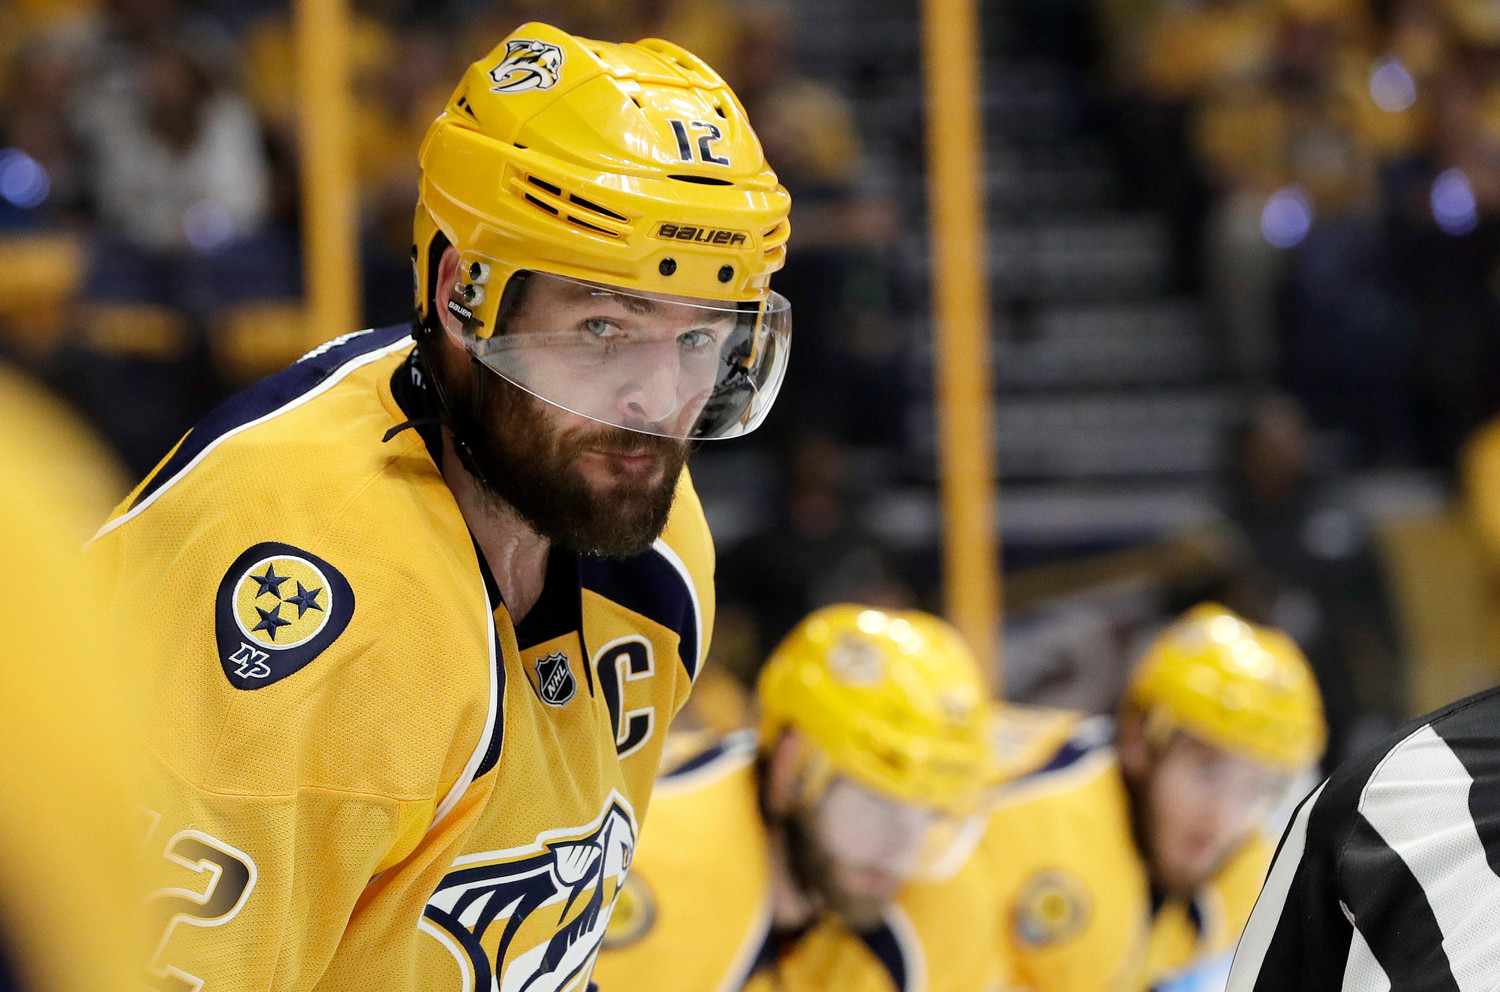 Carrie Underwood's Husband Mike Fisher is Back in the National Hockey League